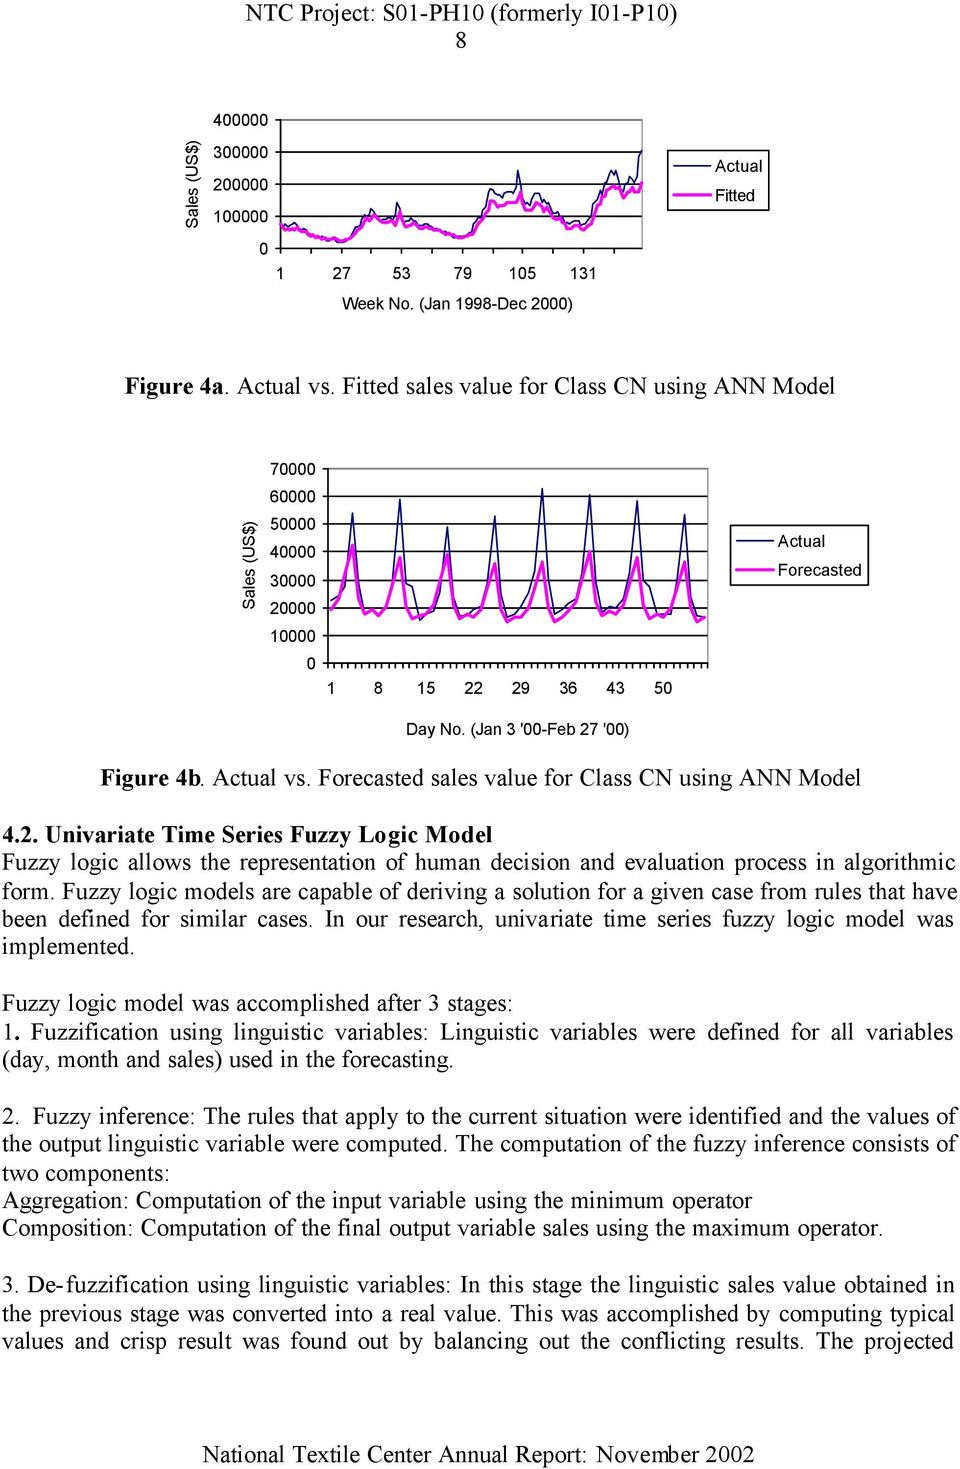 Fuzzy logic models are capable of deriving a solution for a given case from rules that have been defined for similar cases. In our research, univariate time series fuzzy logic model was implemented.